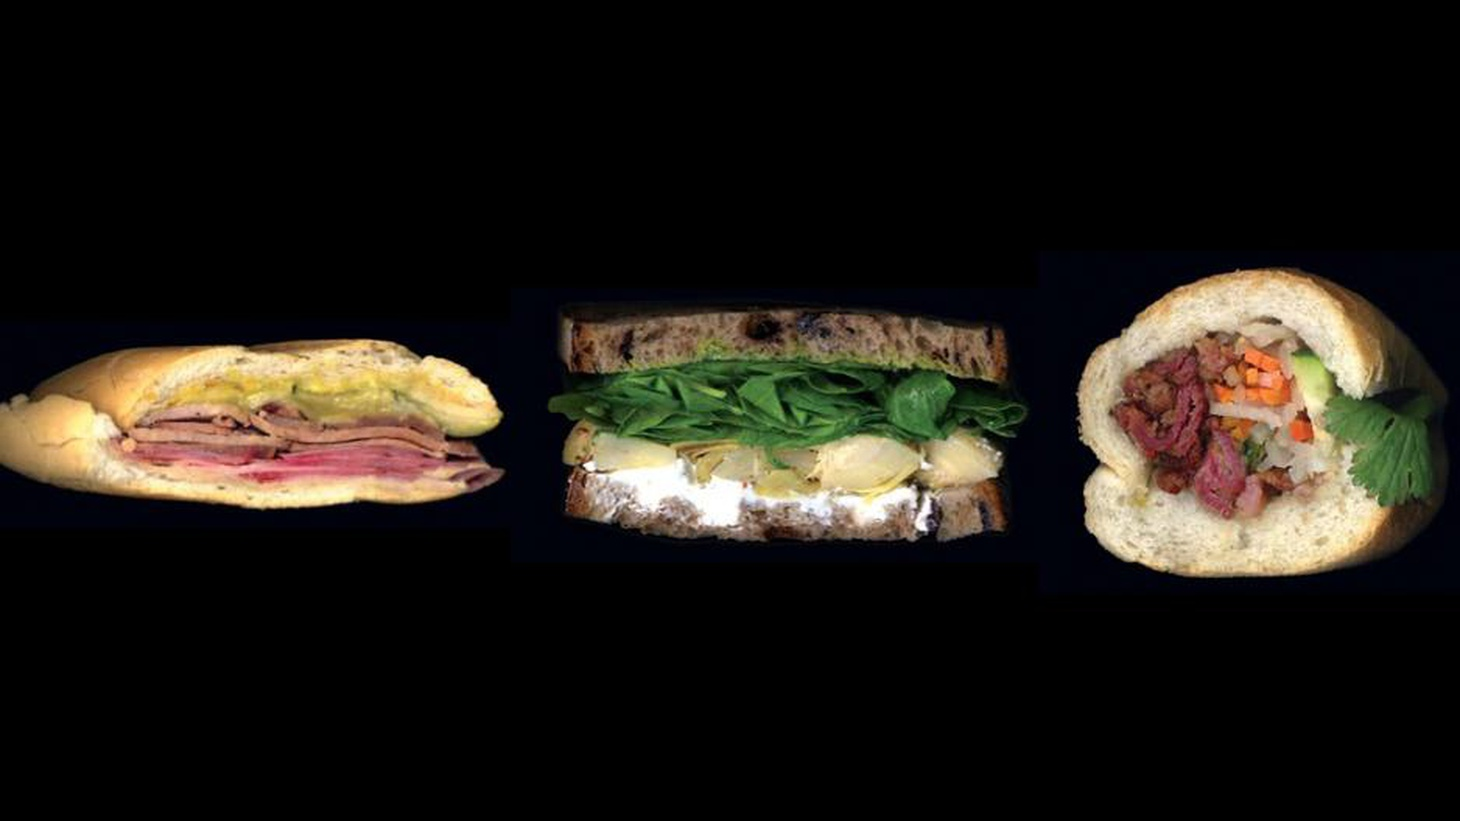 What ever happened to the three-martini lunch? This week on Good Food with Evan Kleiman, find out about the state of lunch in Los Angeles. Plus Jonathan Gold takes us our for hot dogs and we'll talk about the perils of too much salt.